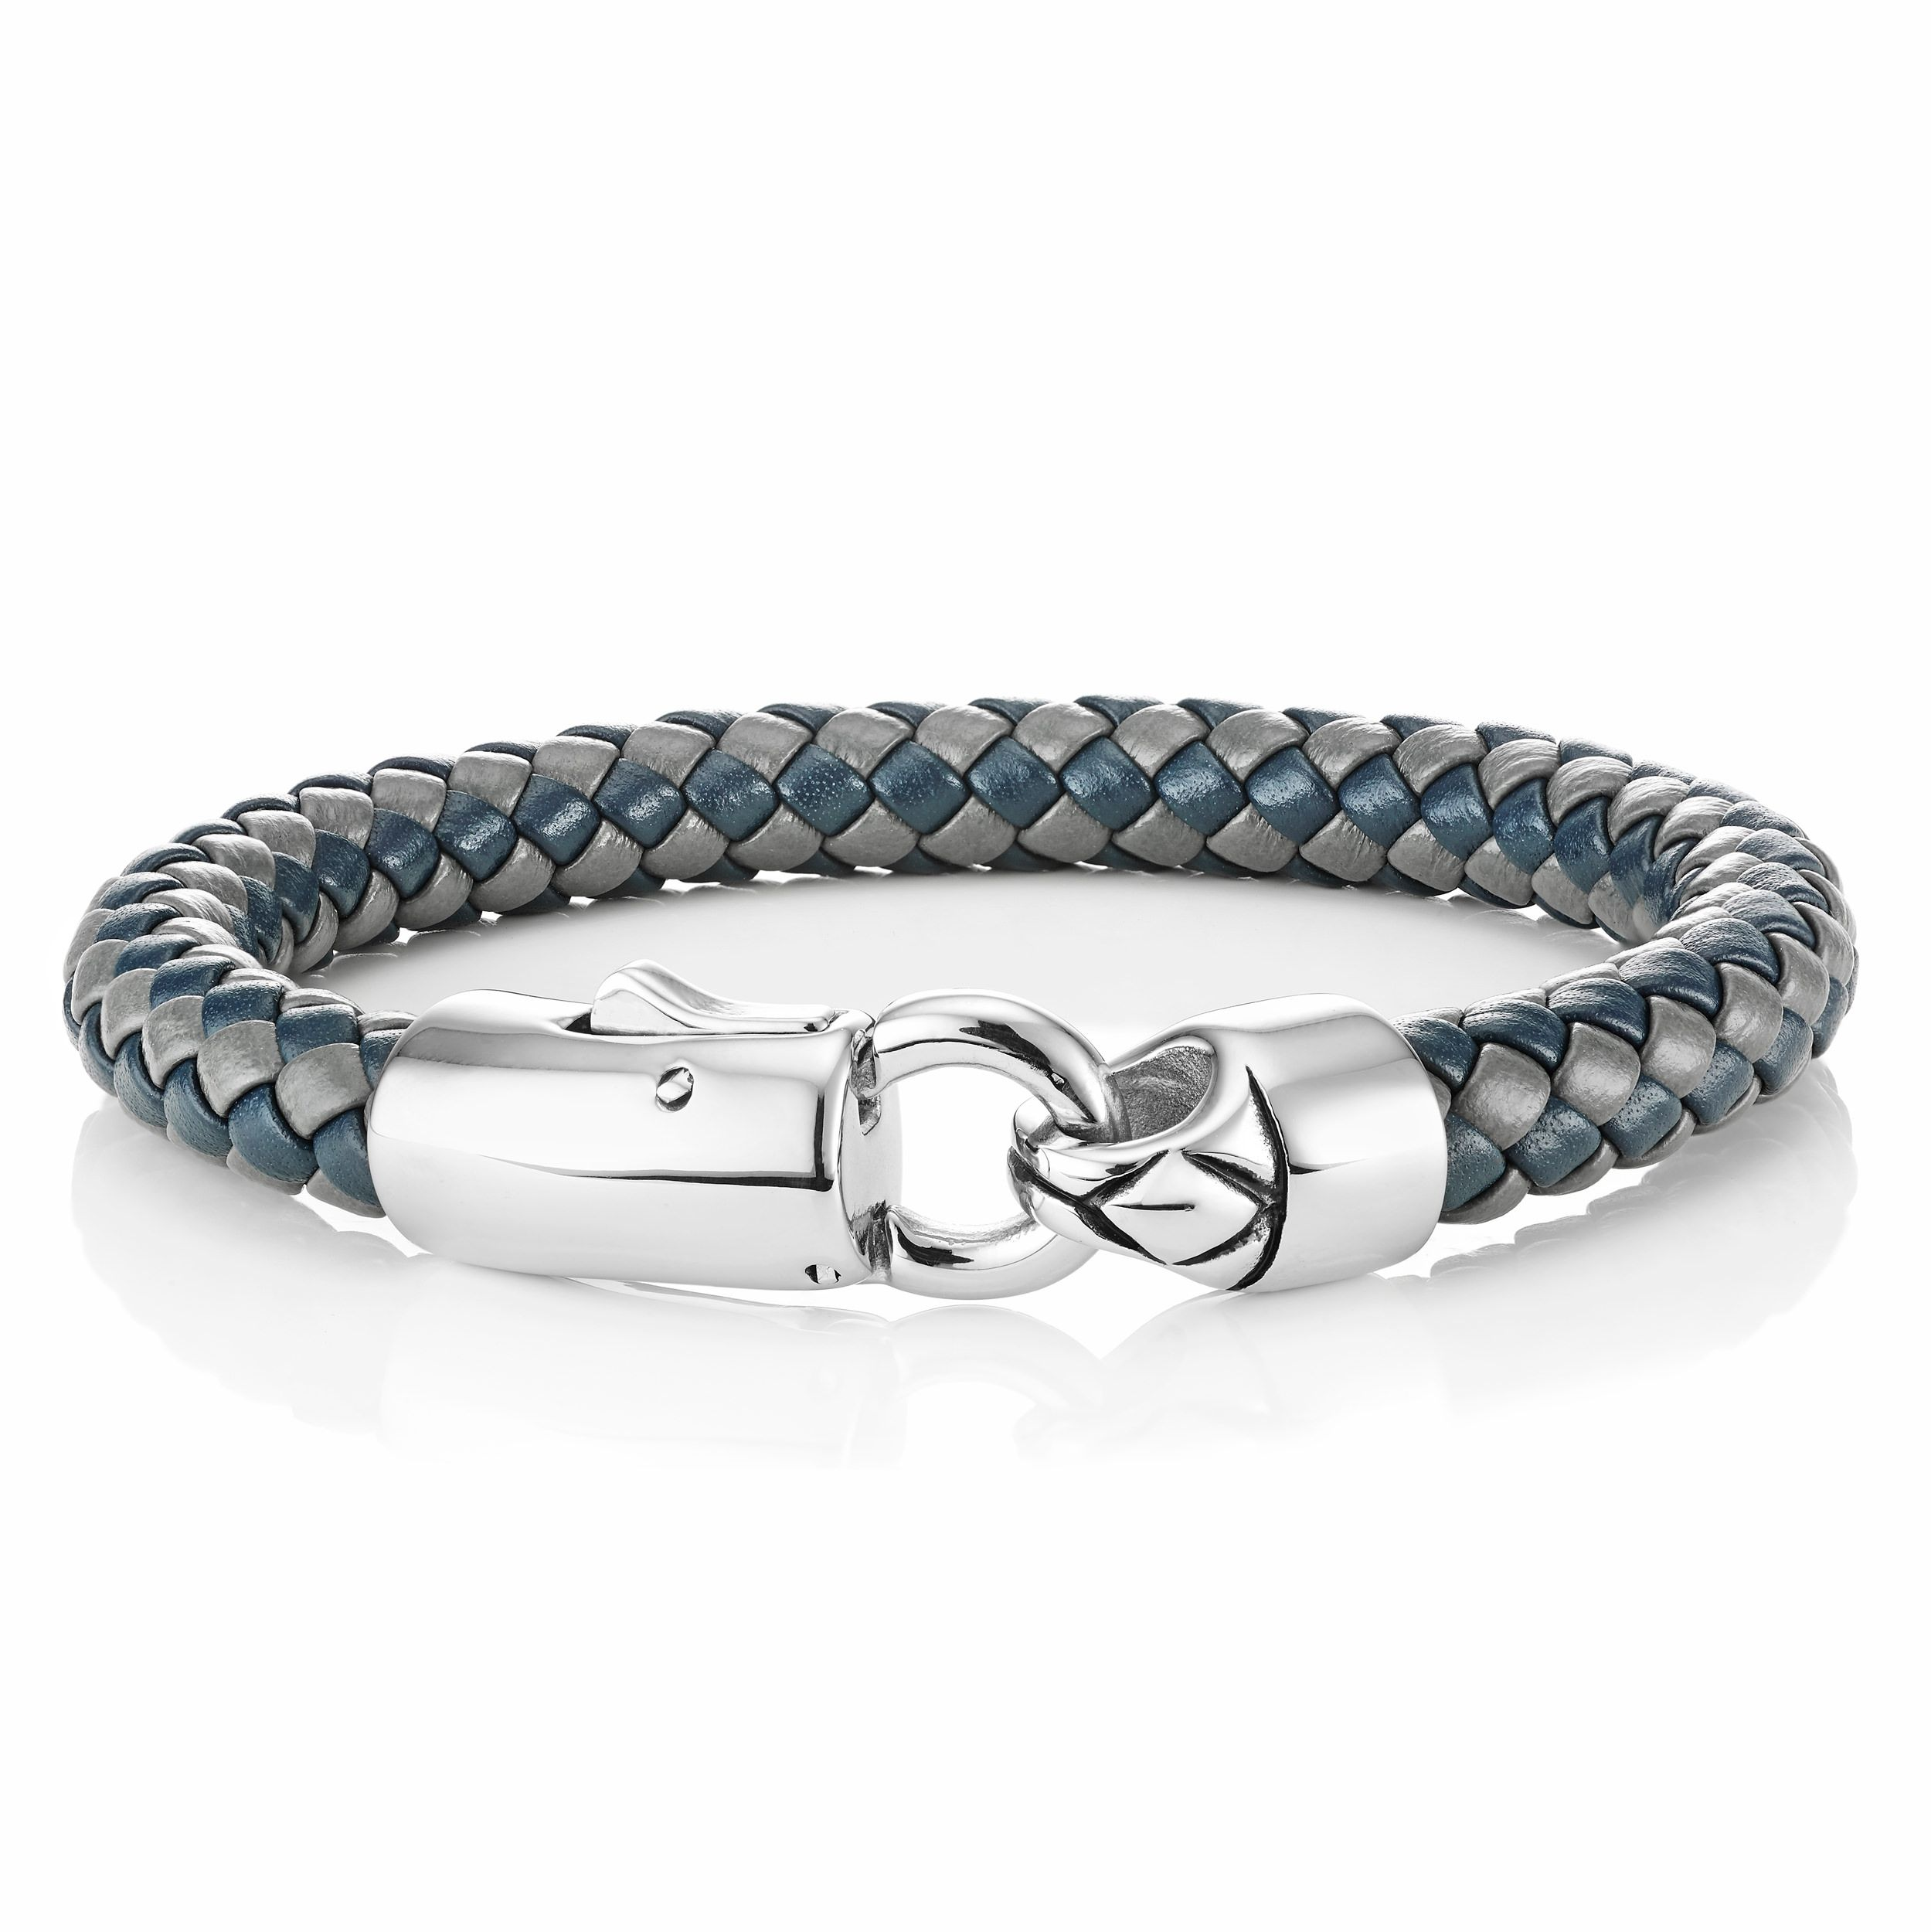 Buckley London For Him Barbican Chunky Leather Clasp Bracelet